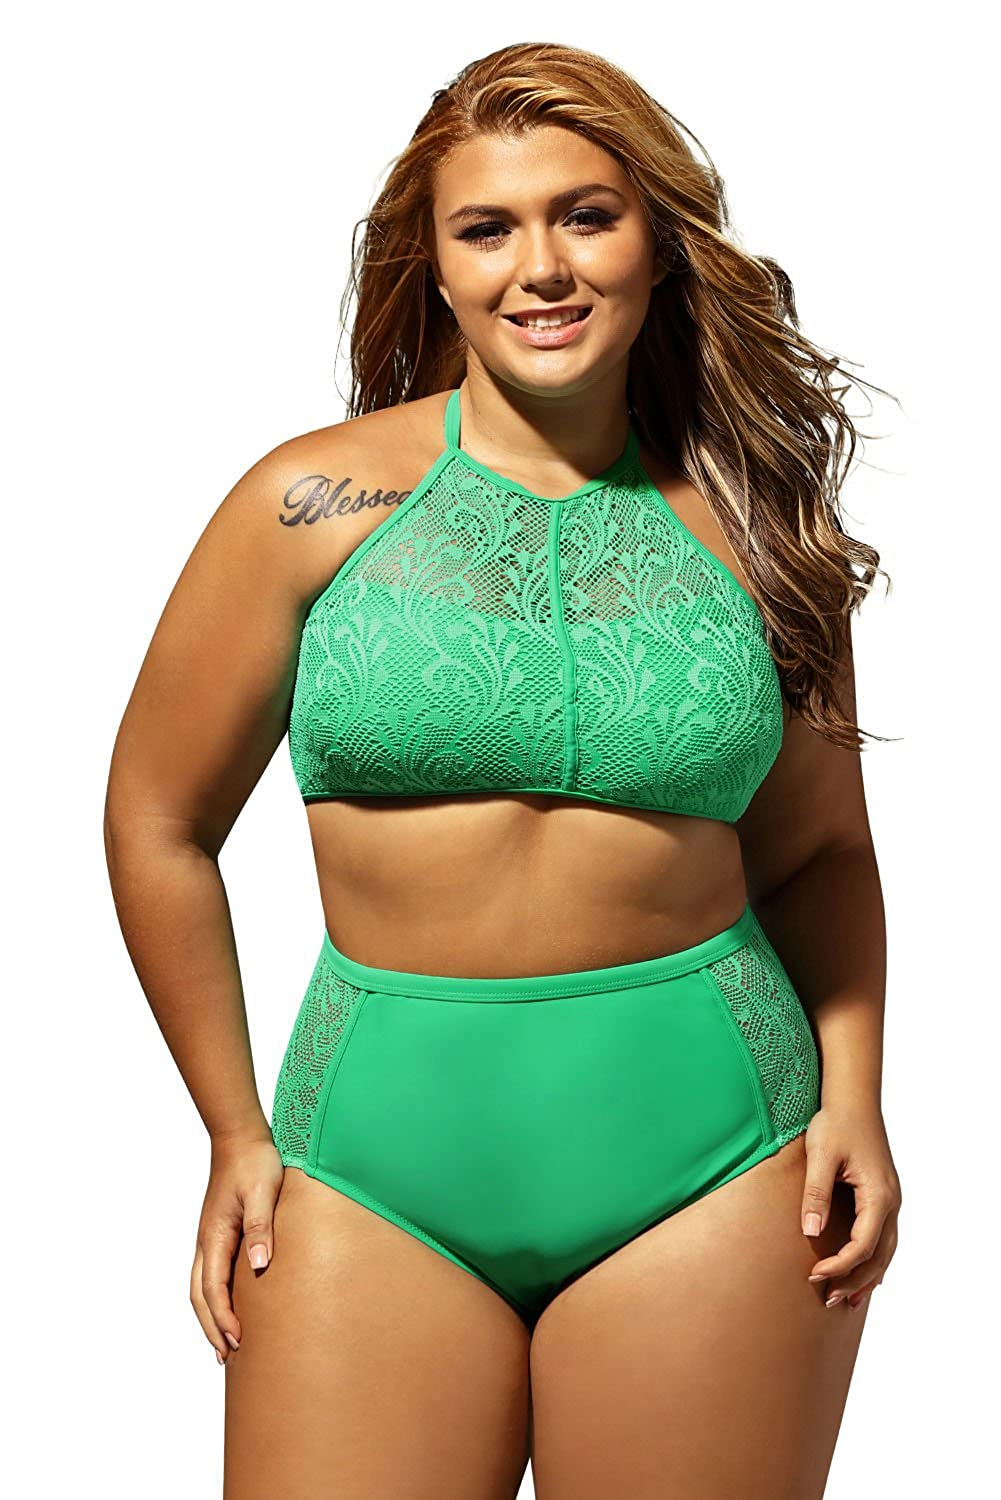 108330cd7cf84 EVALESS own its Trademark, US Serial,Registration,or Reference No.86887548.  Plus Size Design,High Neck,Patterned Mesh Insert